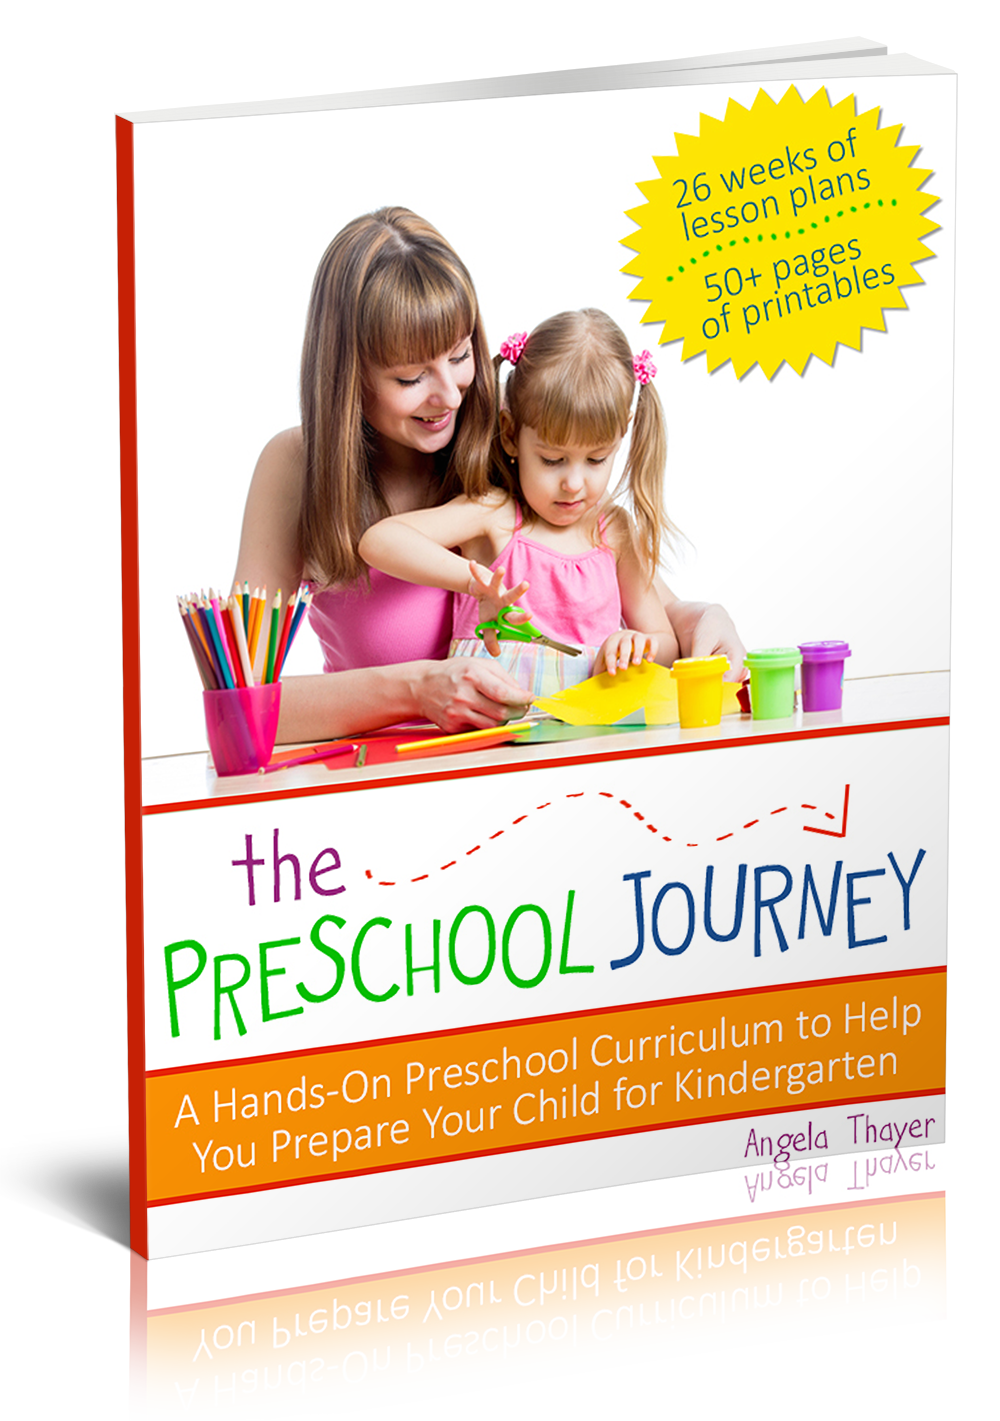 The_Preschool_Journey_Book_Cover-3D